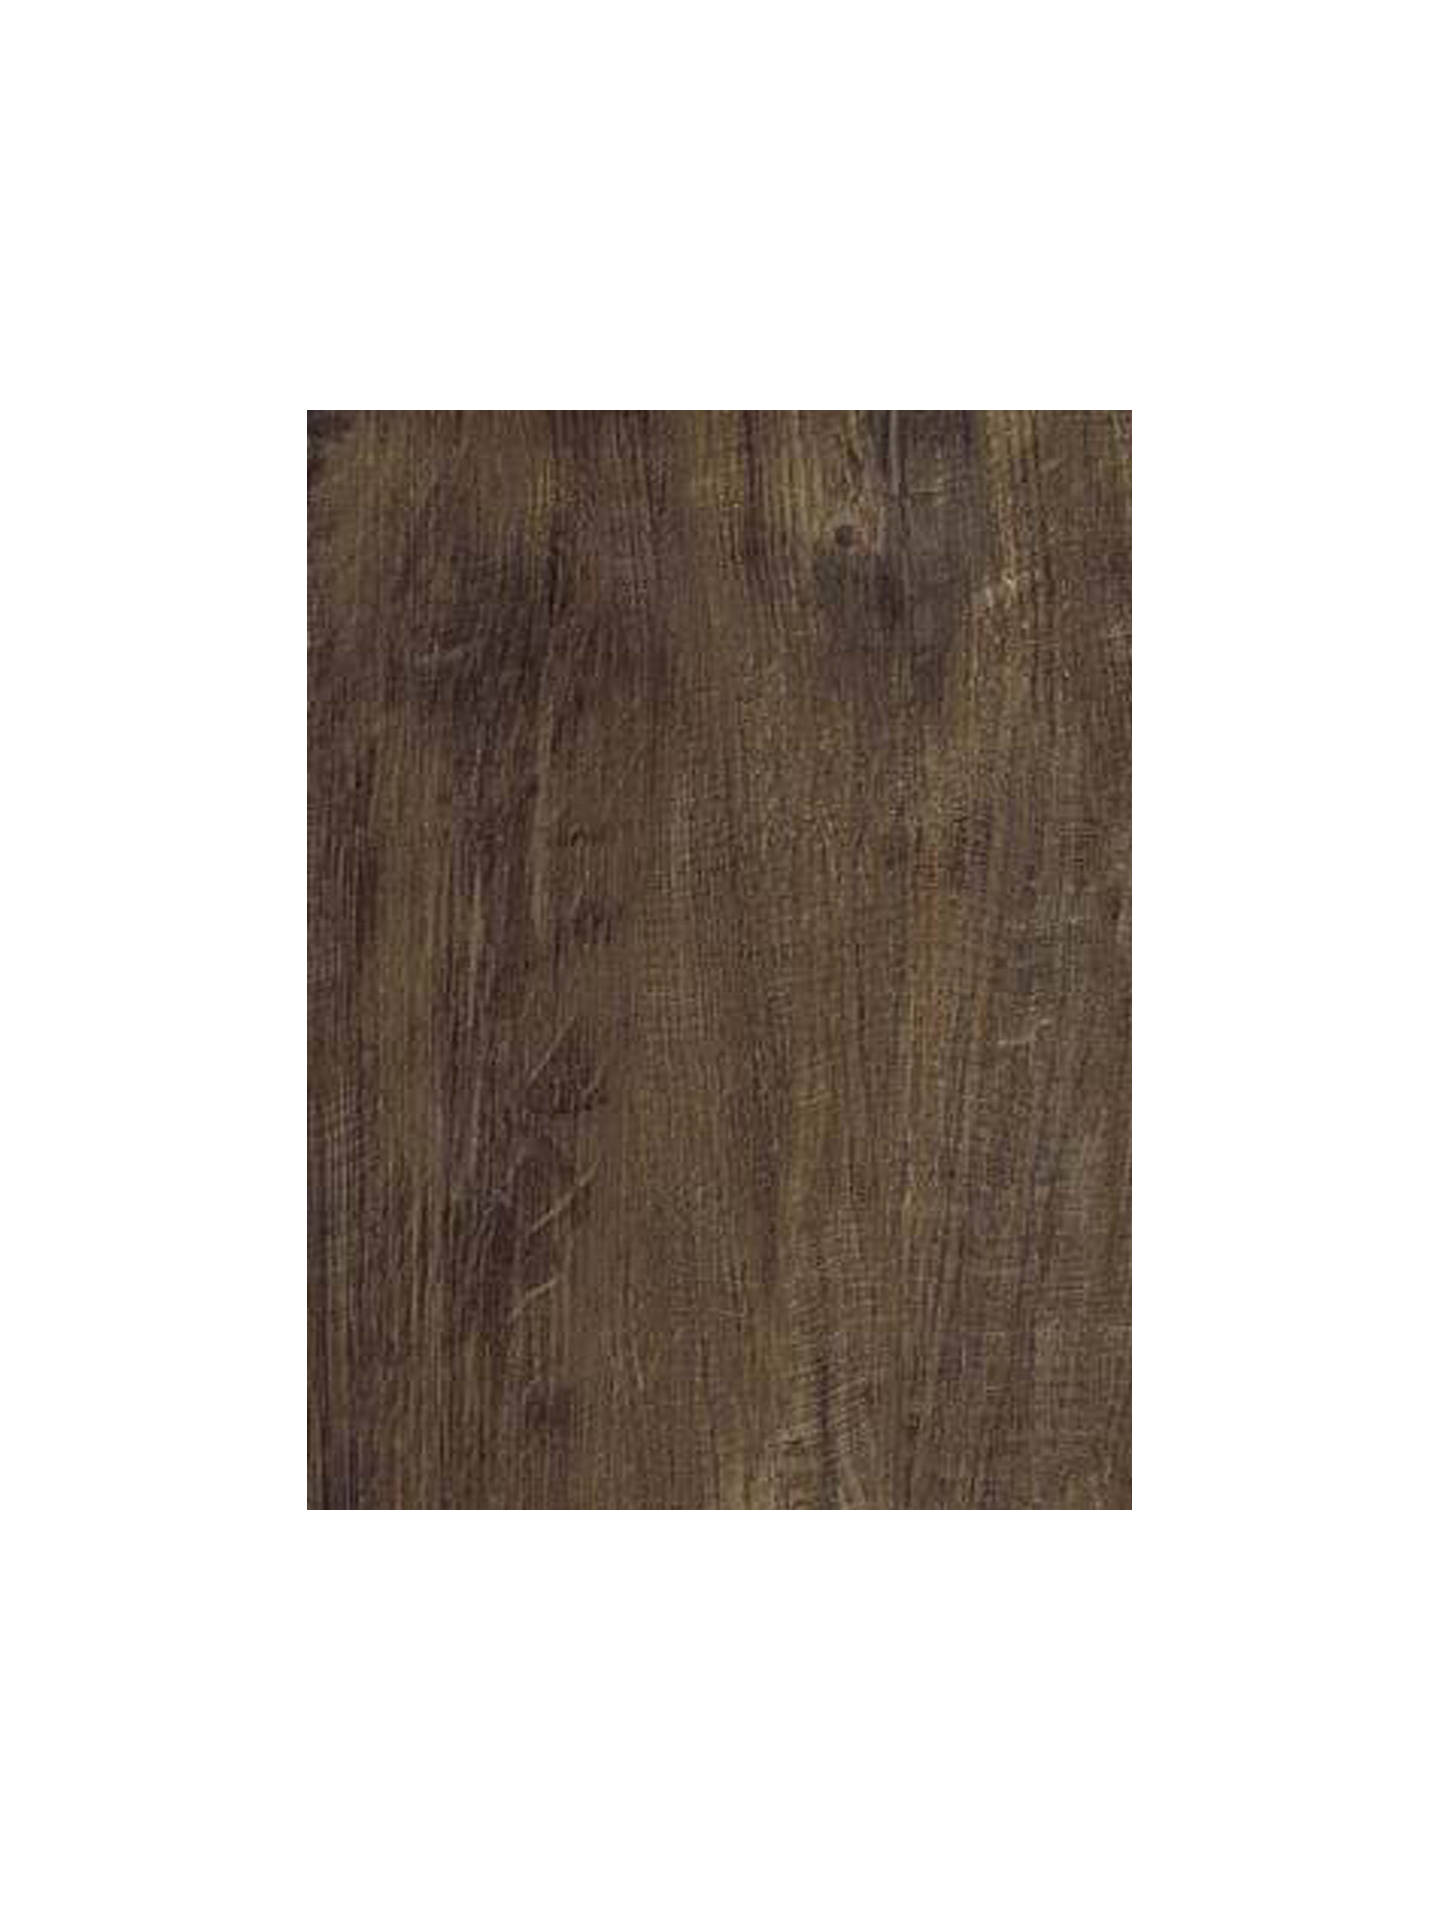 BuyAmtico Spacia Vinyl Flooring Tiles, Rustic Barn Online at johnlewis.com